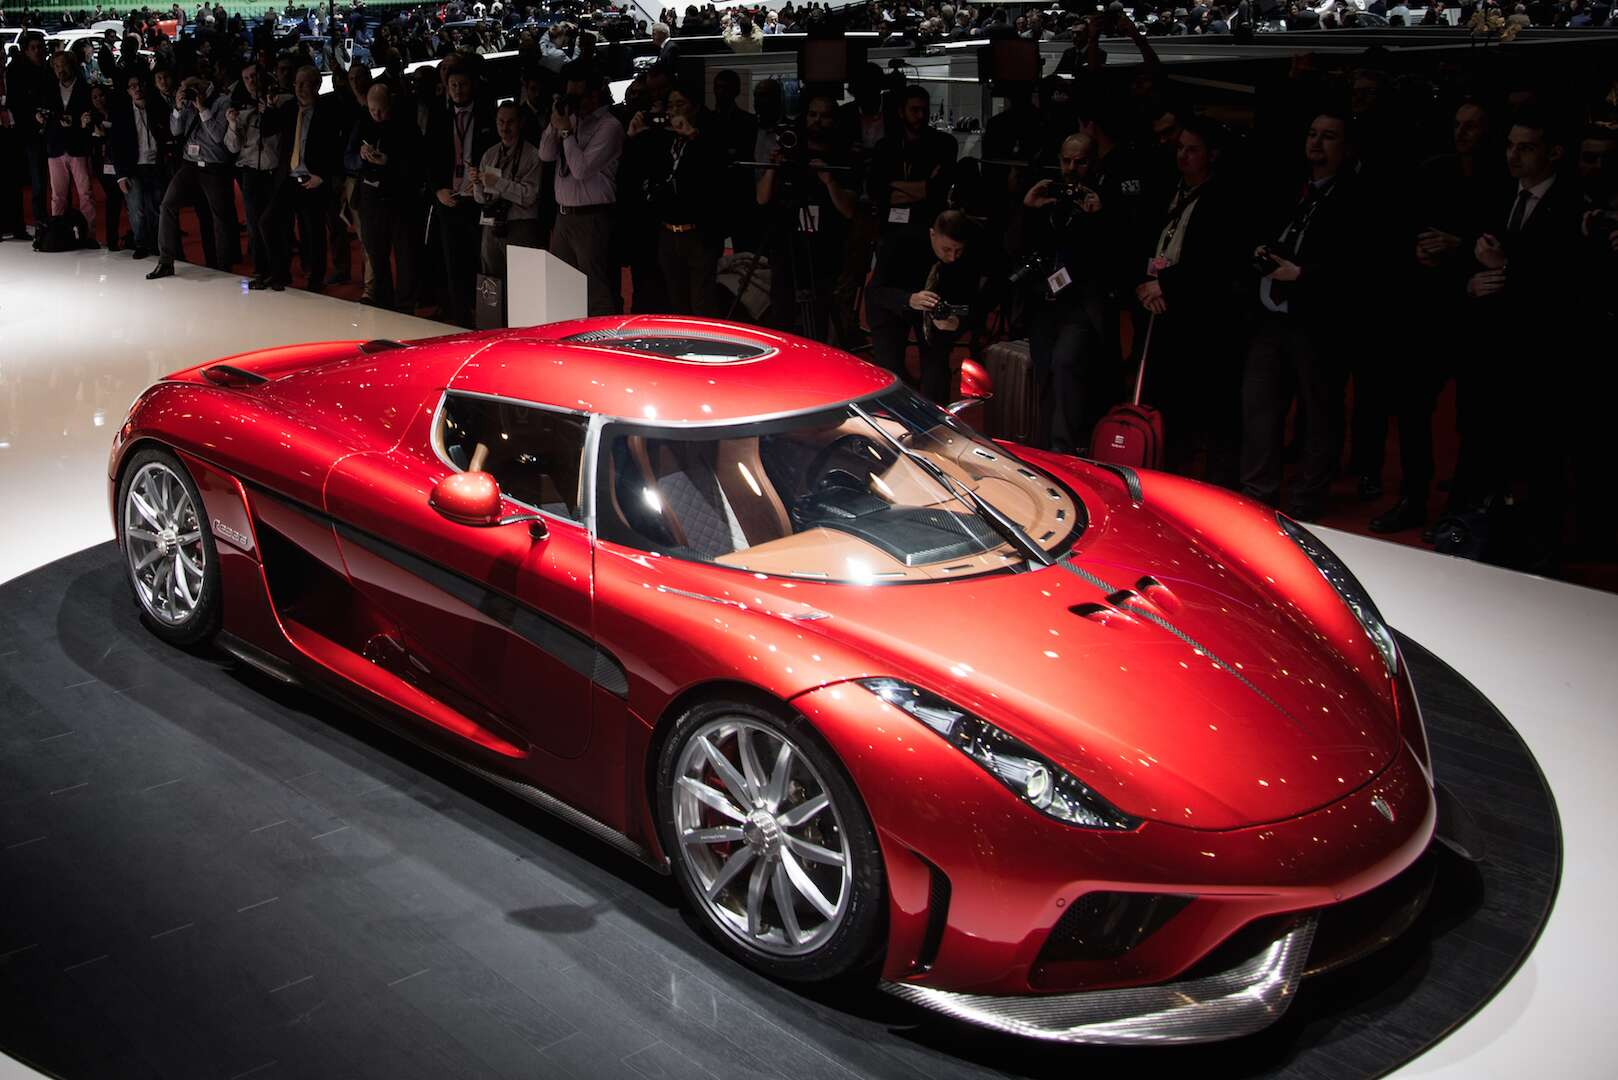 10 Koenigsegg Regera 1 9 Million